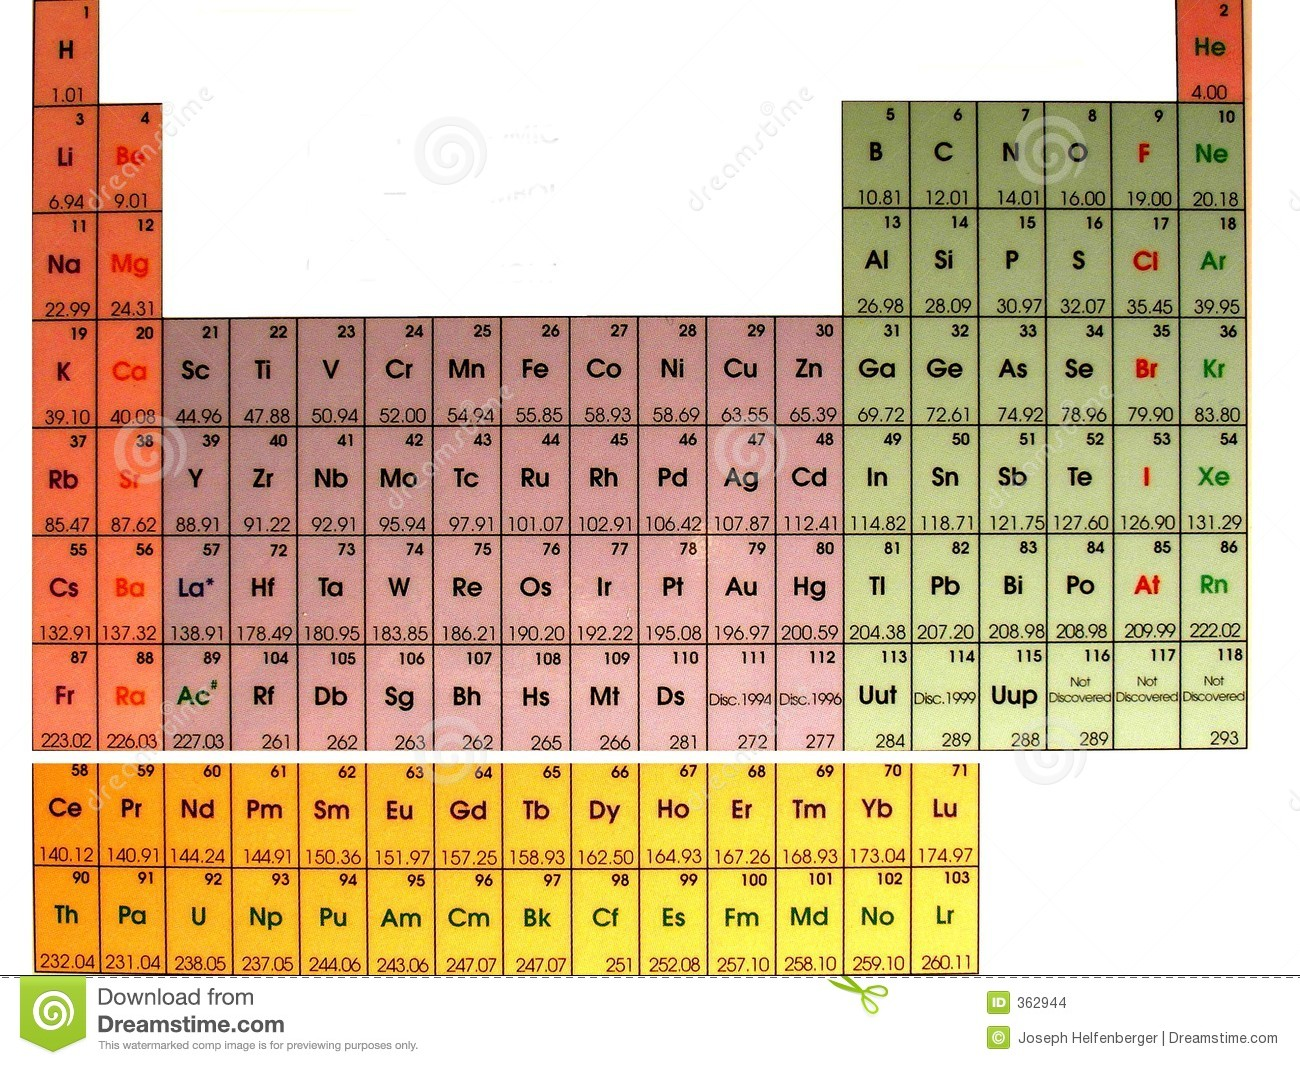 Solid liquid gas periodic table images periodic table images new periodic table metals nonmetals periodic periodic nonmetals table metals table periodic isolated gas table periodic gamestrikefo Image collections